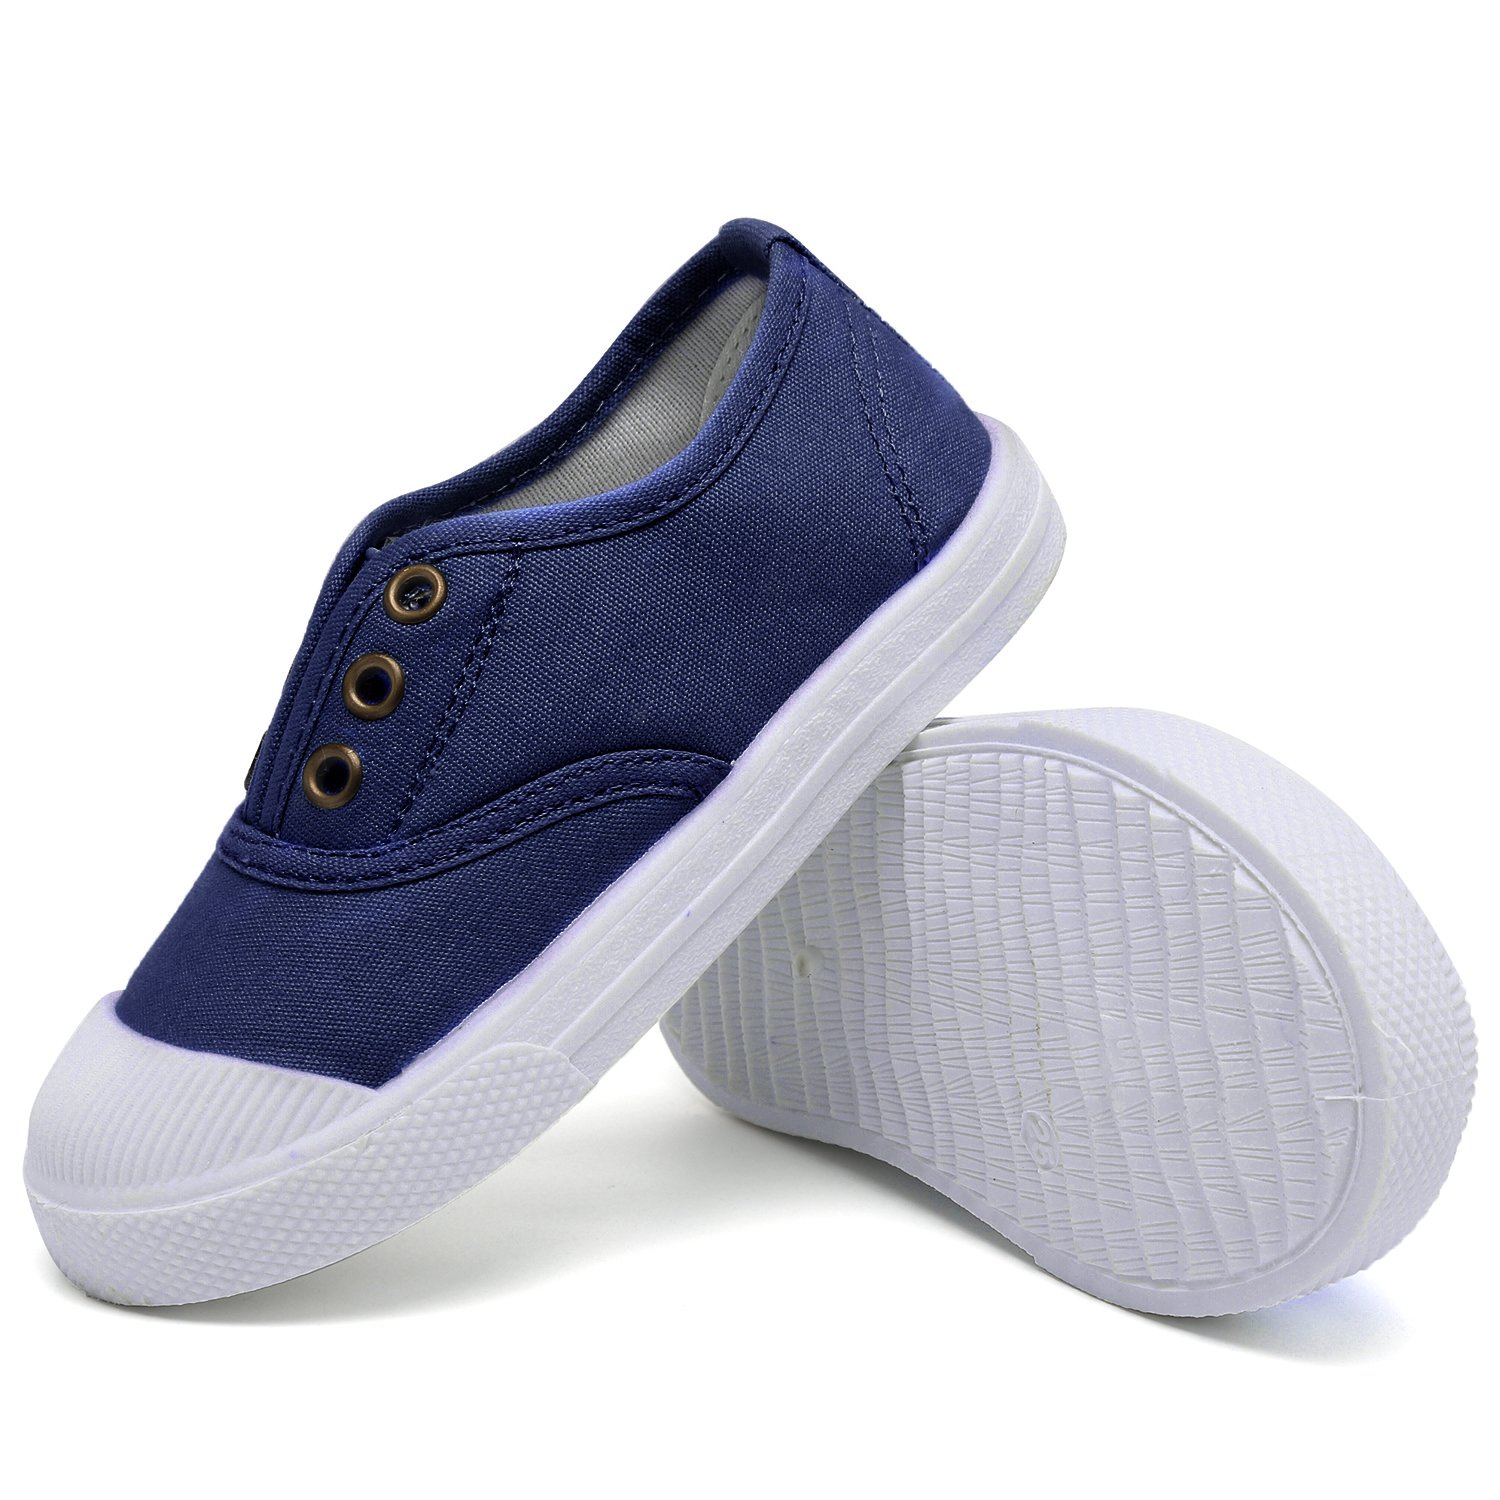 buy cheap collections Tumble Royal Blue Slip-On Style Baby Booties - 3 to 9 Months cheap sale with mastercard pK4vHqH